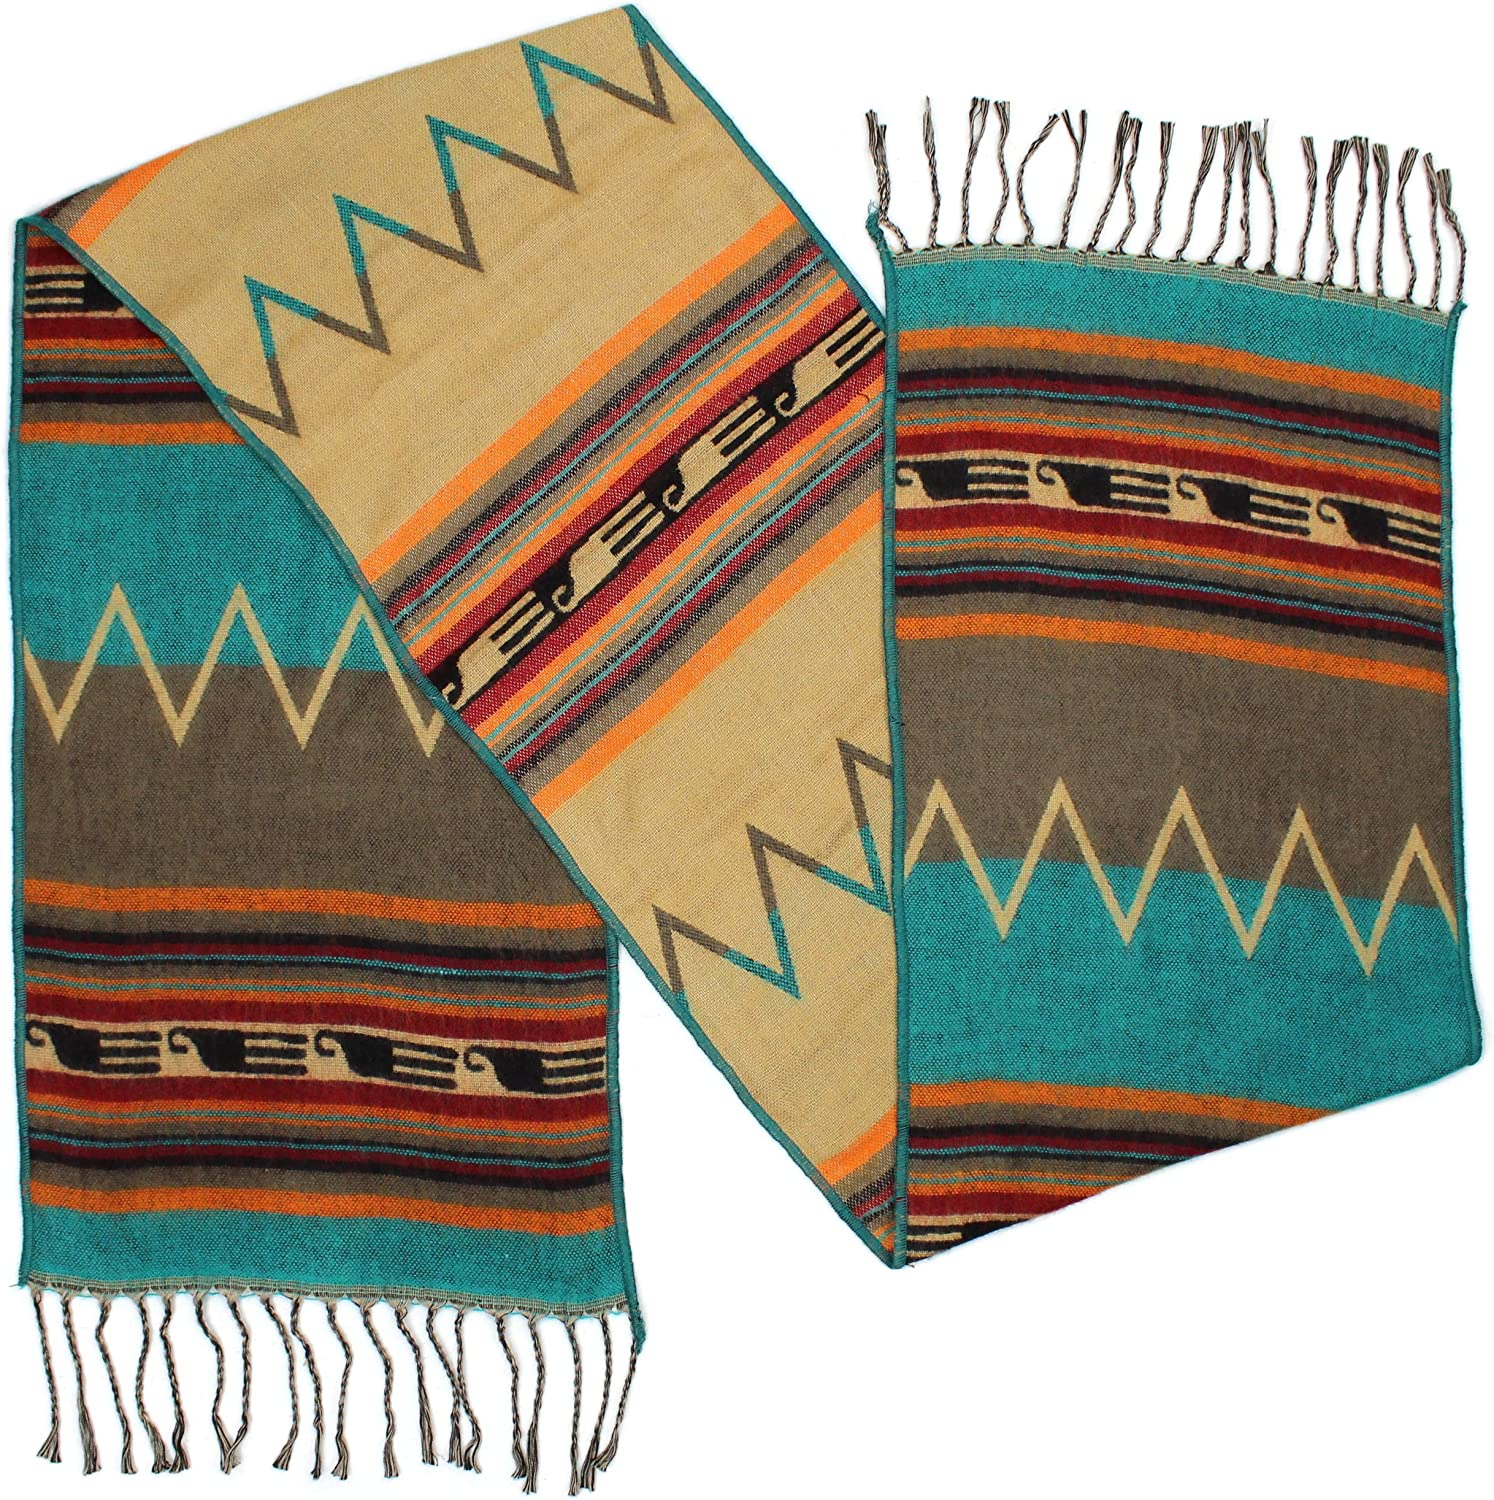 """Rustic Covenant """" Western Scarves Collection """" Southwest Fashion Scarf for Women, Zuni Zig Zag Turquoise Orange, 12 Inches by 72 Inches"""